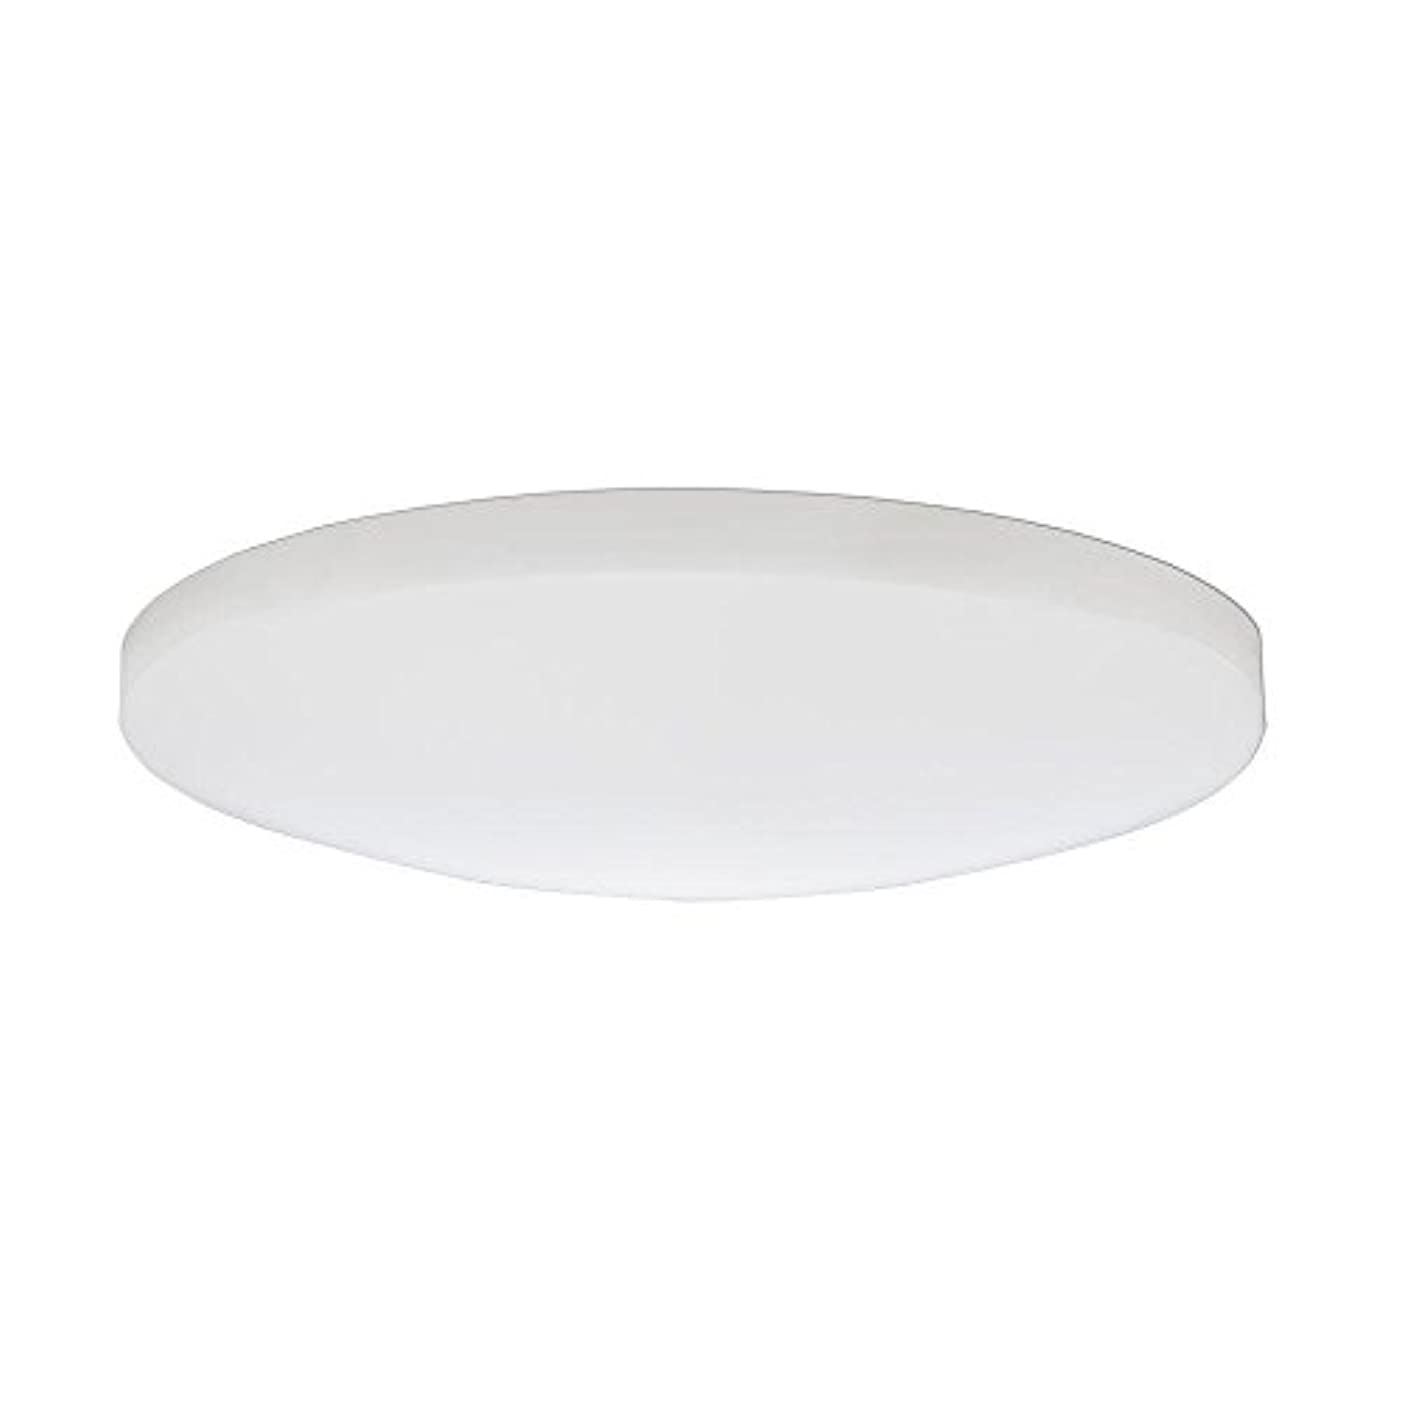 バンド冗談で痛みLithonia Lighting DSATL16 M4 Replacement Glass Diffuser, 16', White [並行輸入品]